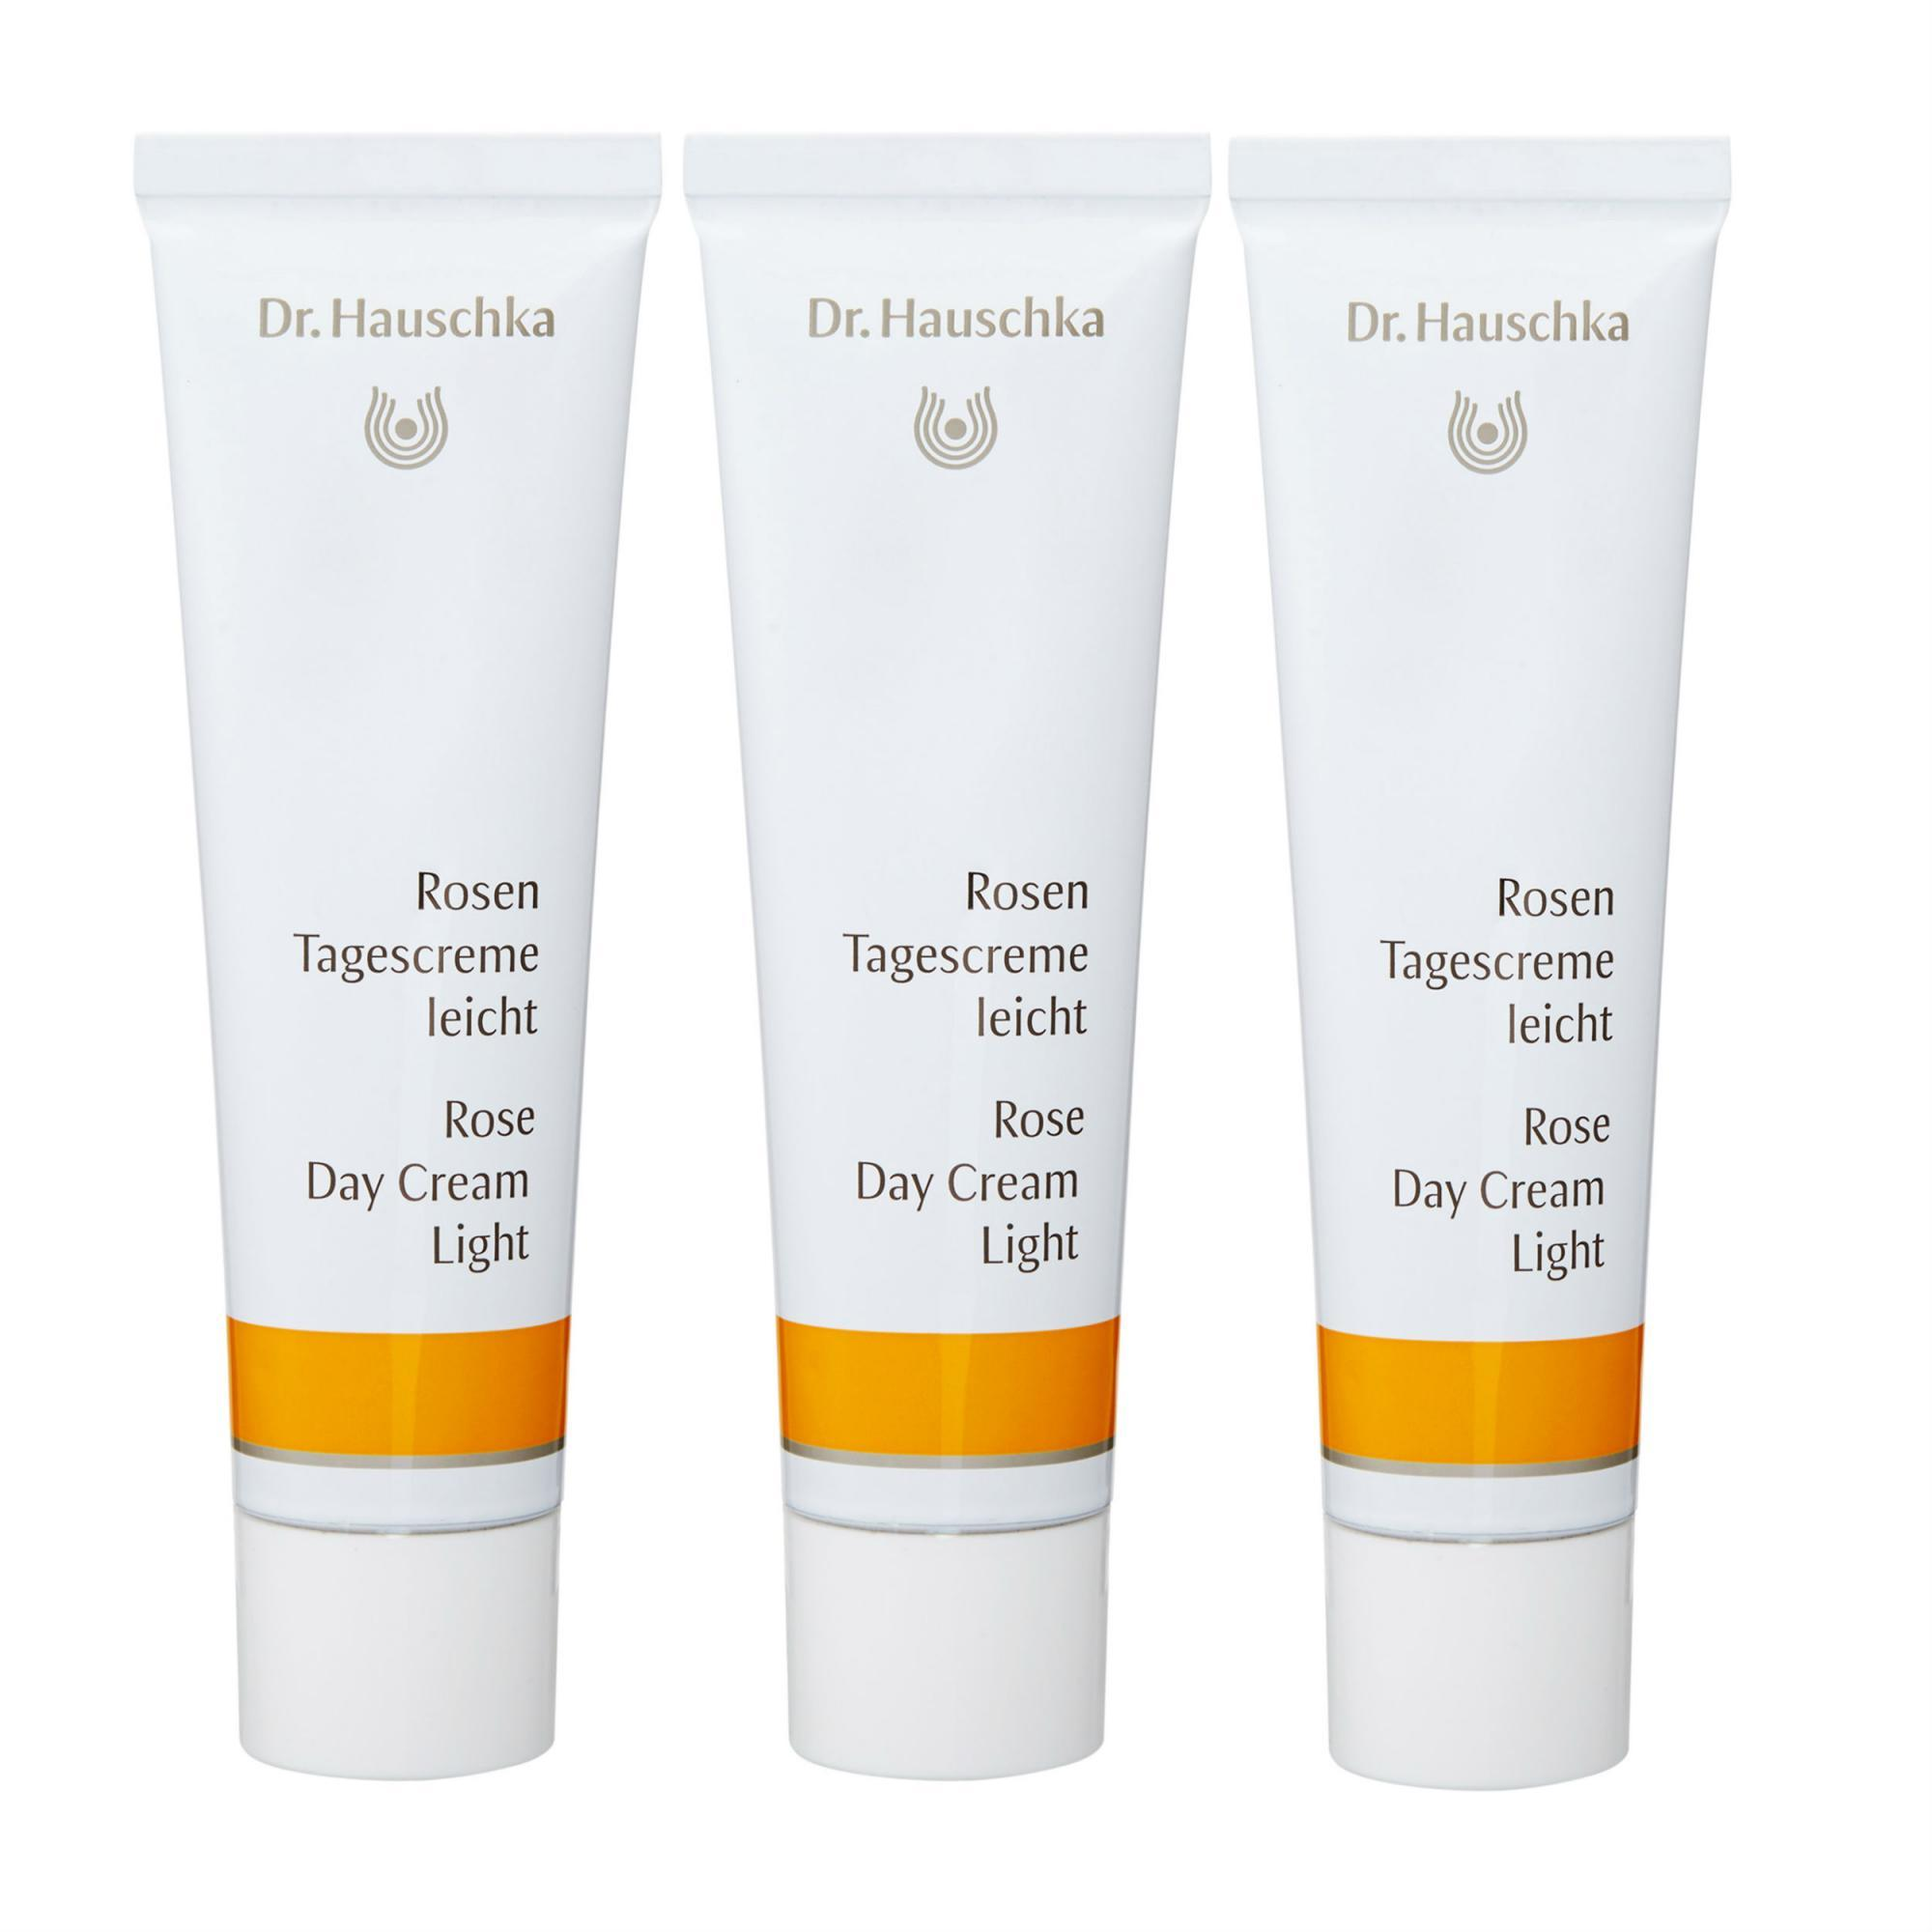 Review Dr Hauschka Rose Day Cream Light 30Ml 1Oz X 3 Intl Dr Hauschka